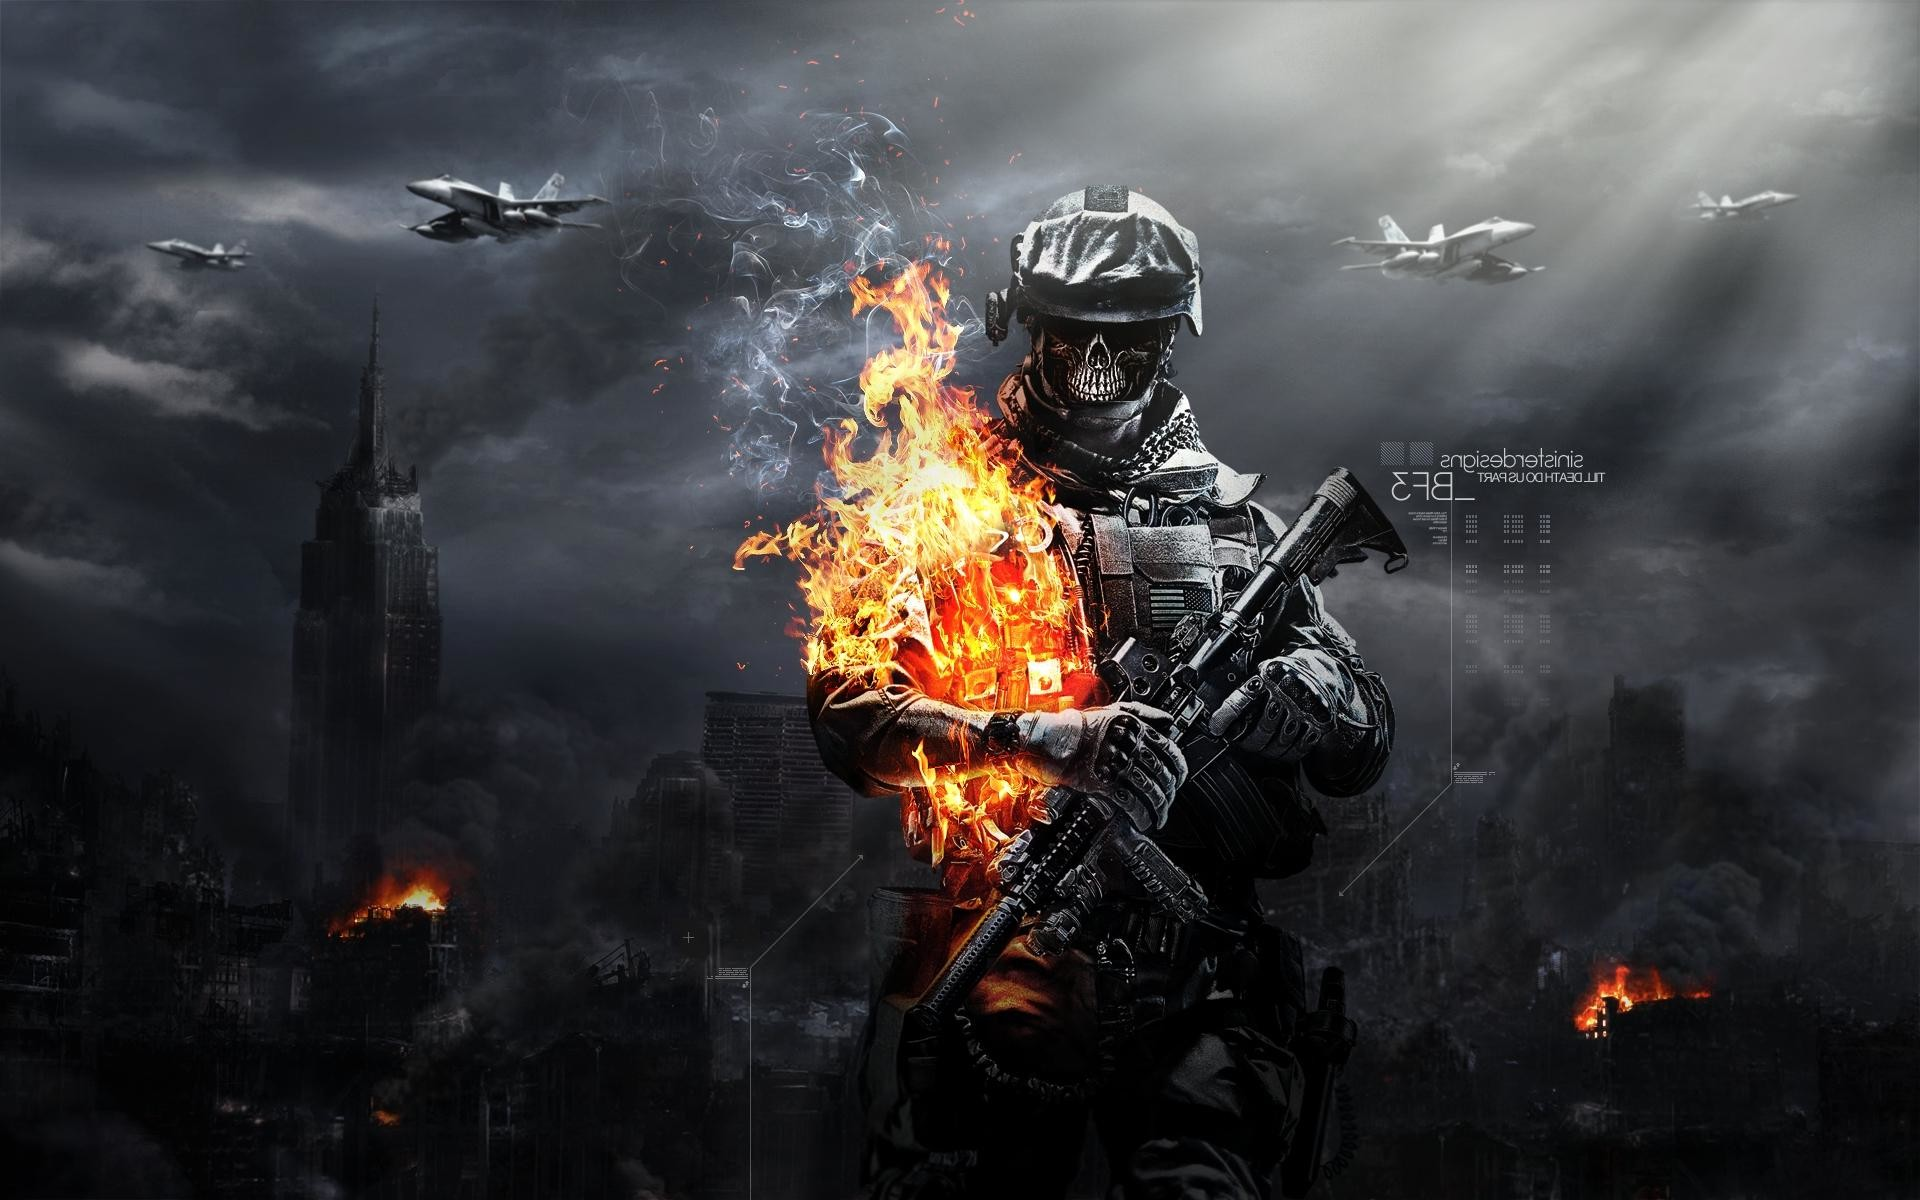 Cool Battlefield 4 Fire Armor In Black Background: Badass Wallpapers Of Skulls (61+ Images